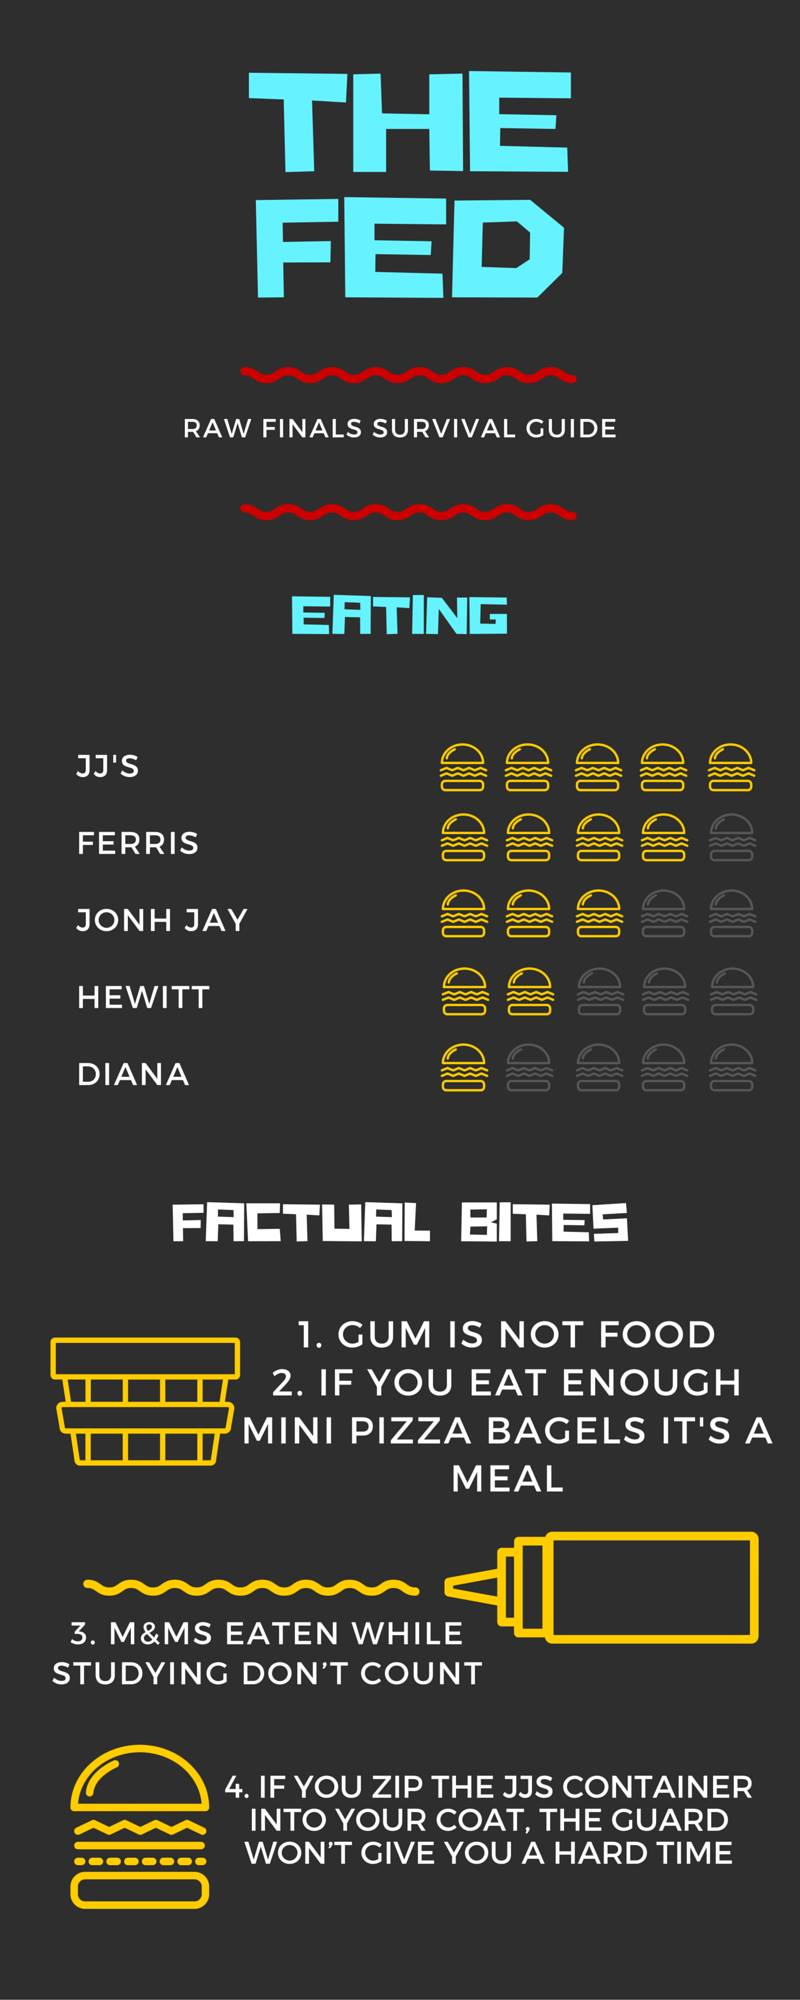 Raw Finals Survival Guide: Food